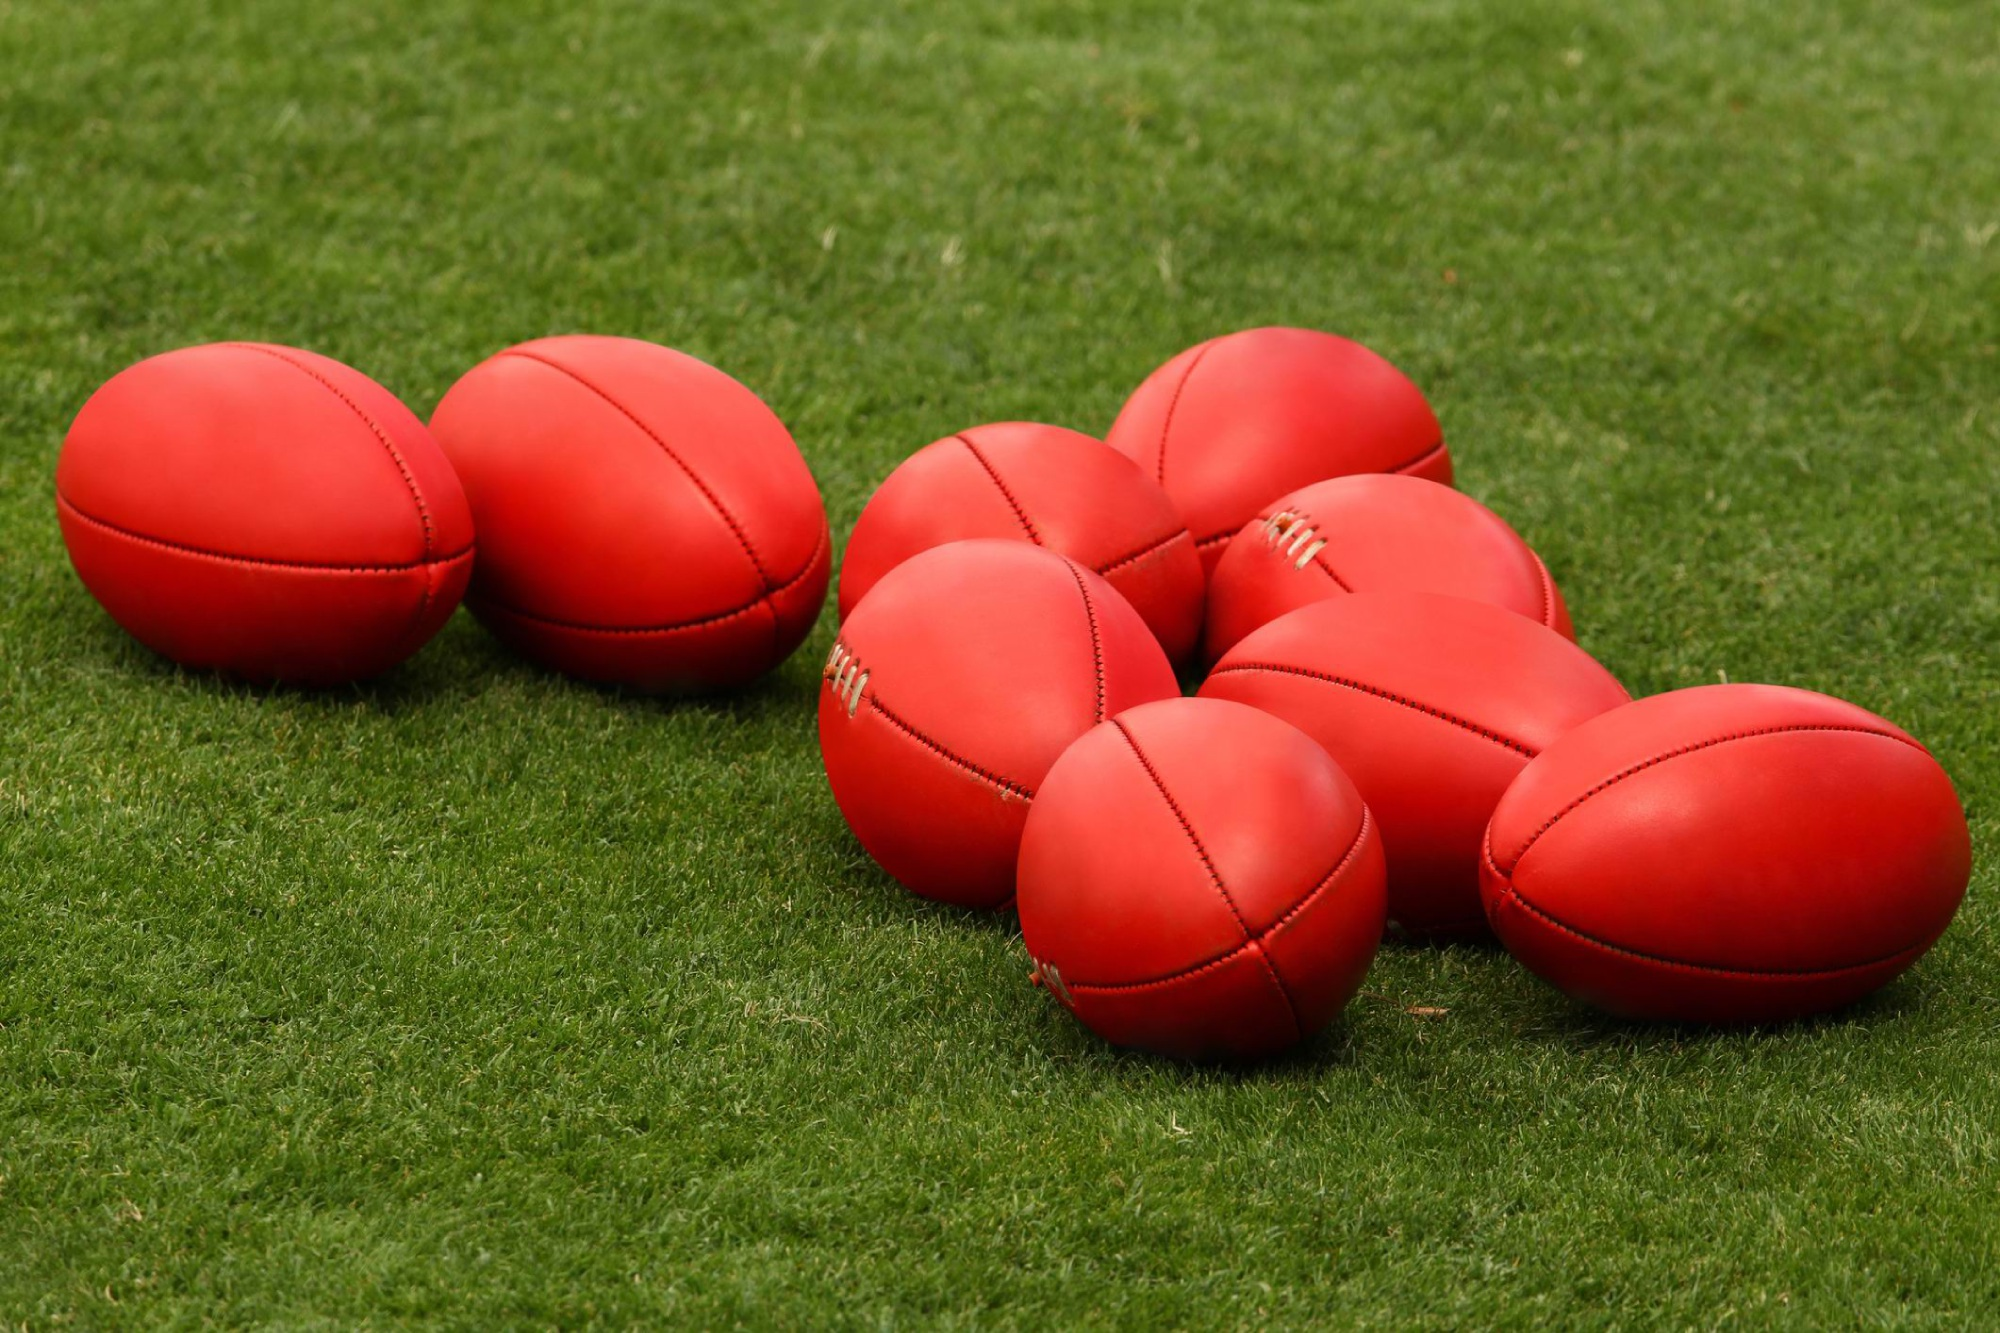 Football: Perth Angels forward picked in extended WA under-18s squad